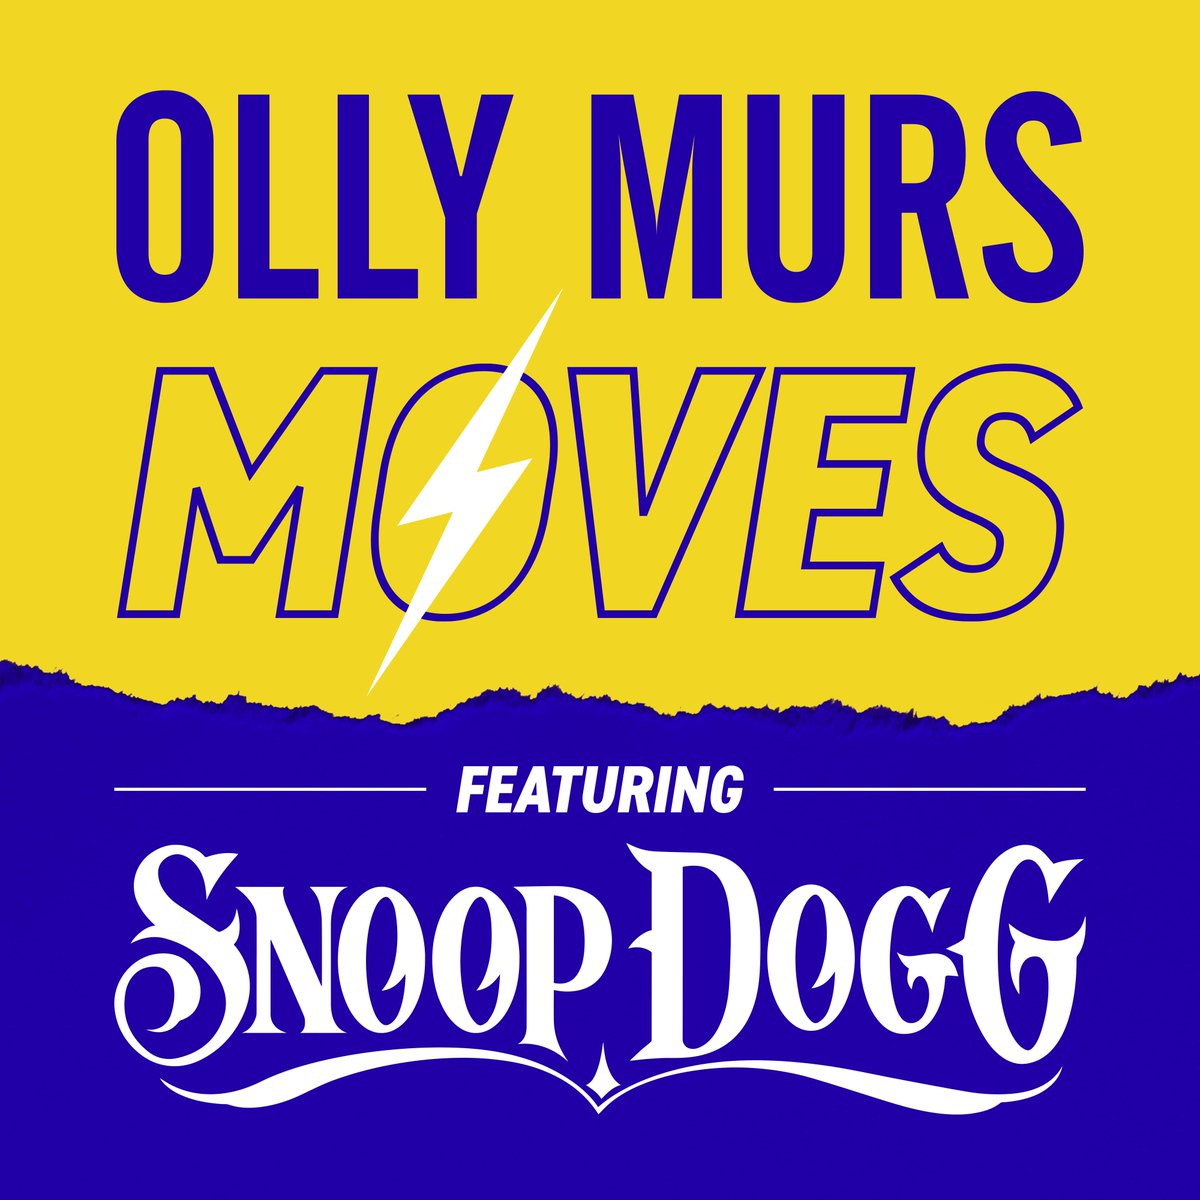 just released a new track #MOVES wit my guy @ollyofficial ????????  https://t.co/Vl1QXbNmuA https://t.co/UQ4LjXc19J